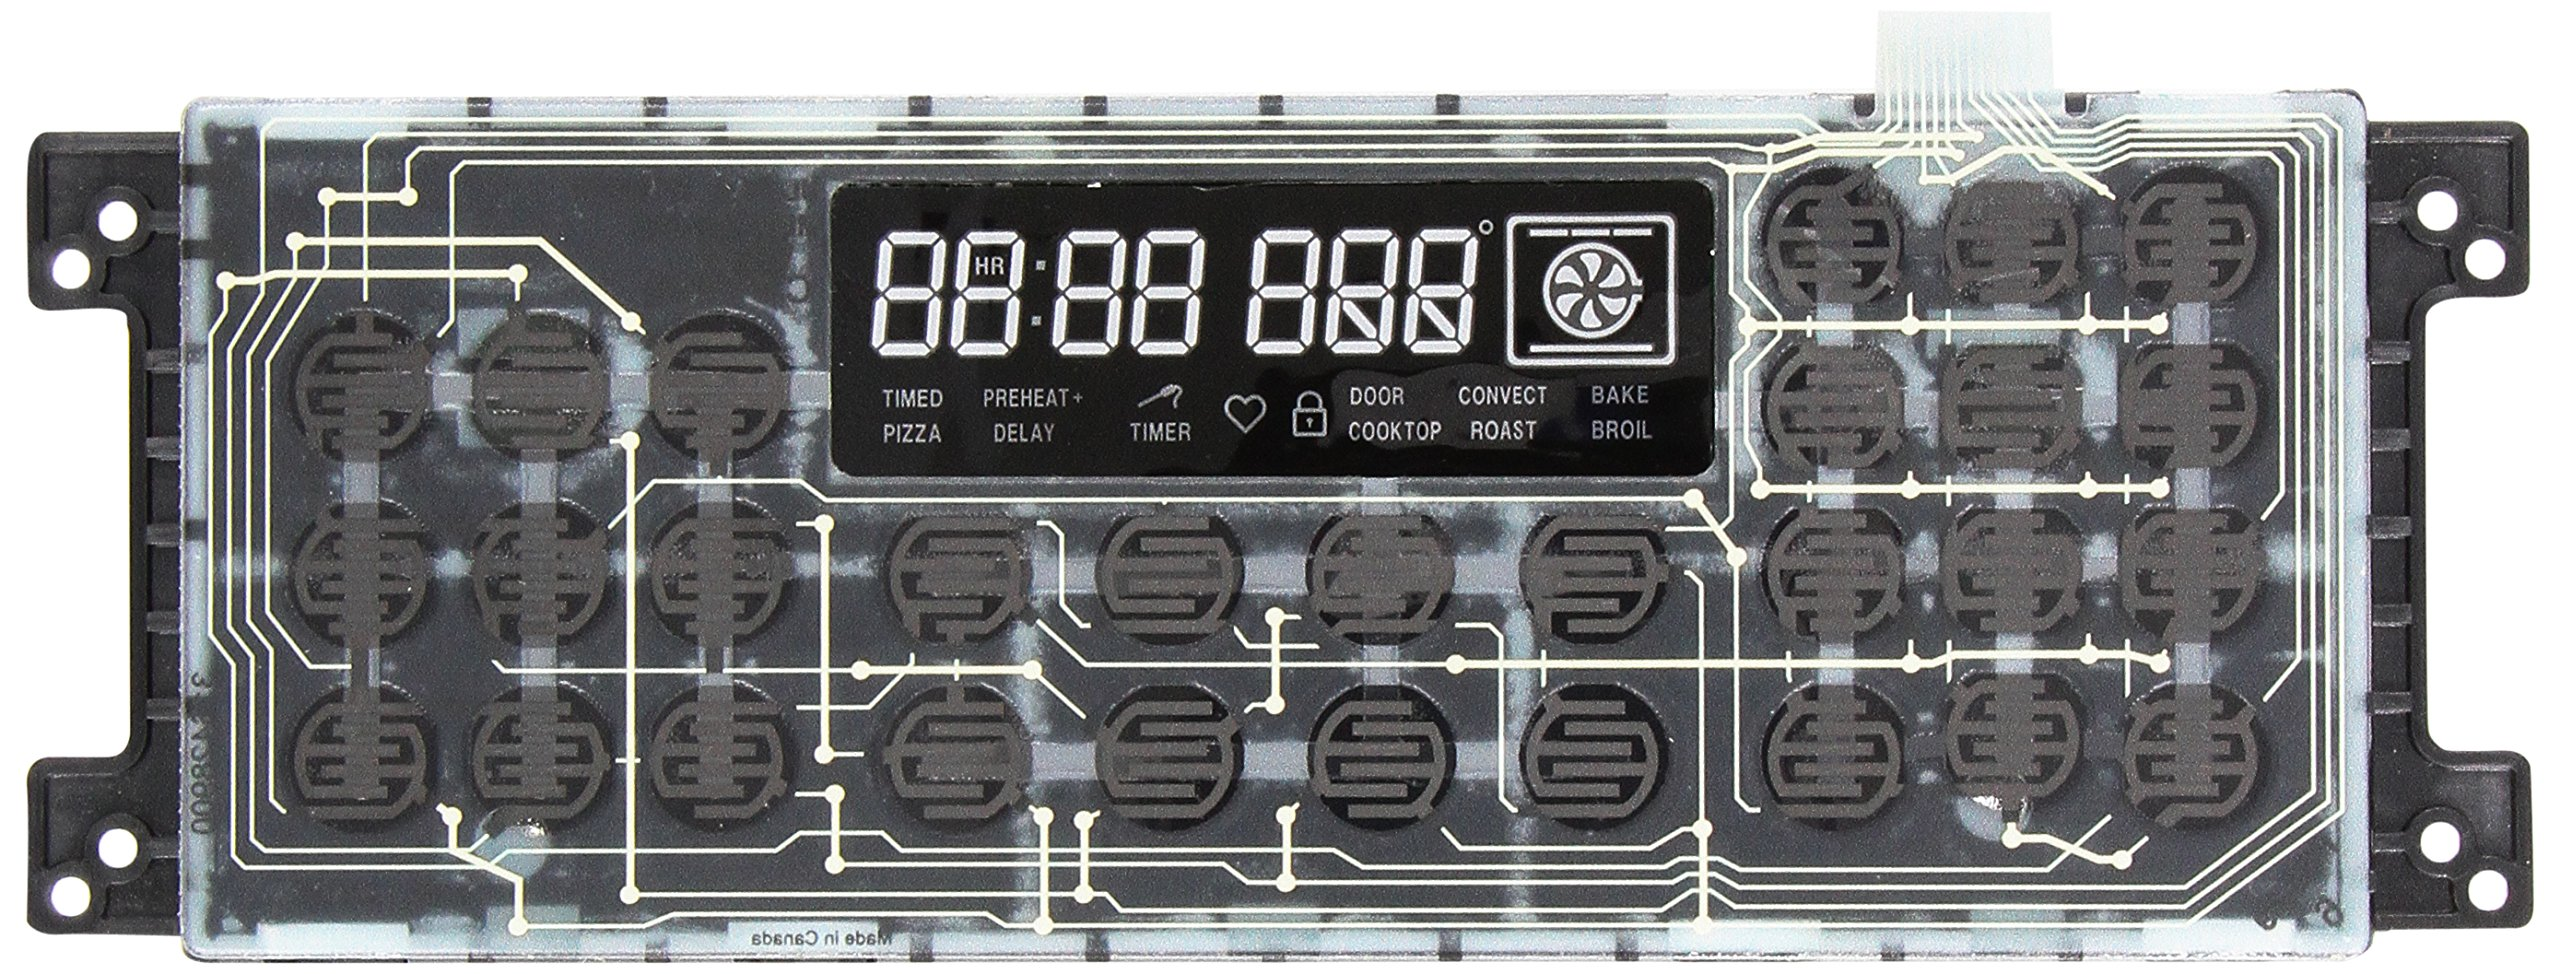 Electrolux 316560118  Oven Control Board by Electrolux